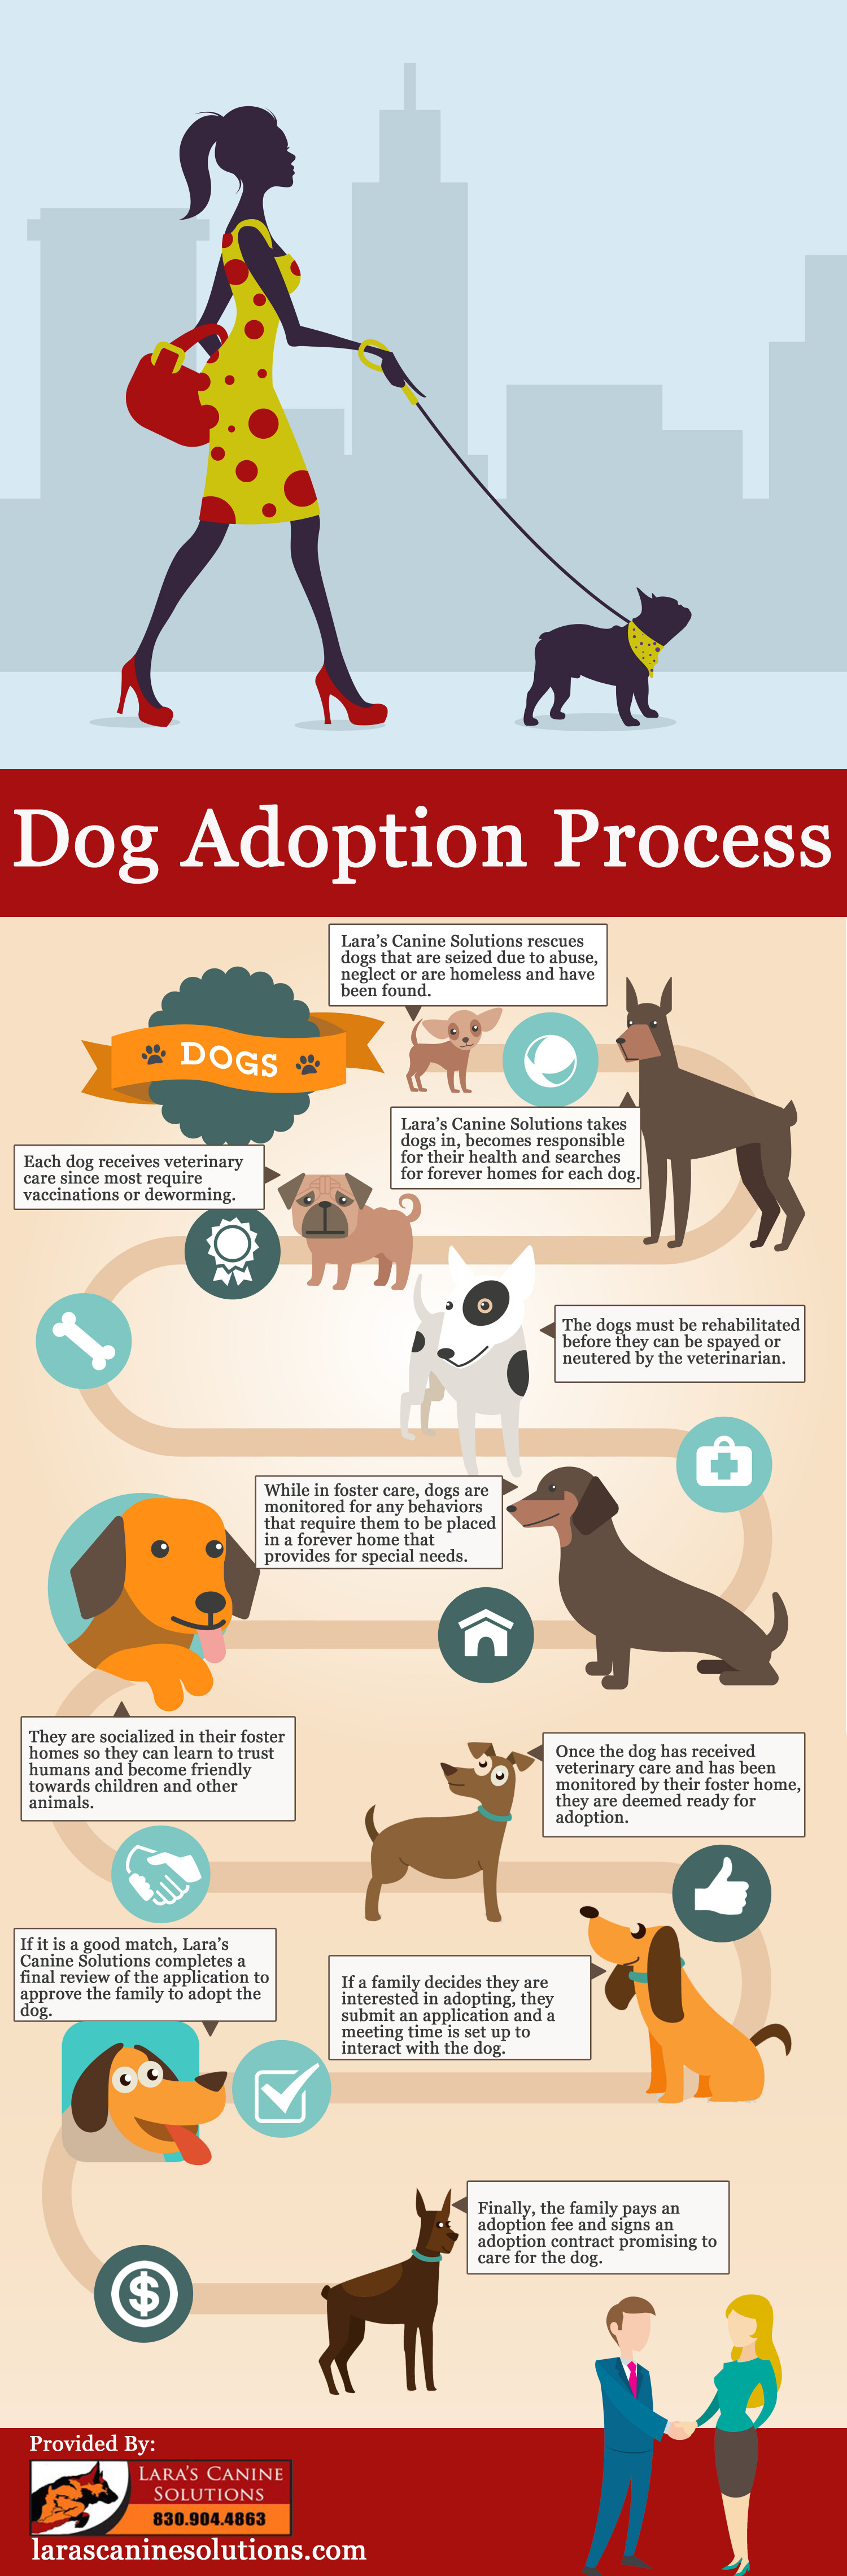 Dog Adoption Process